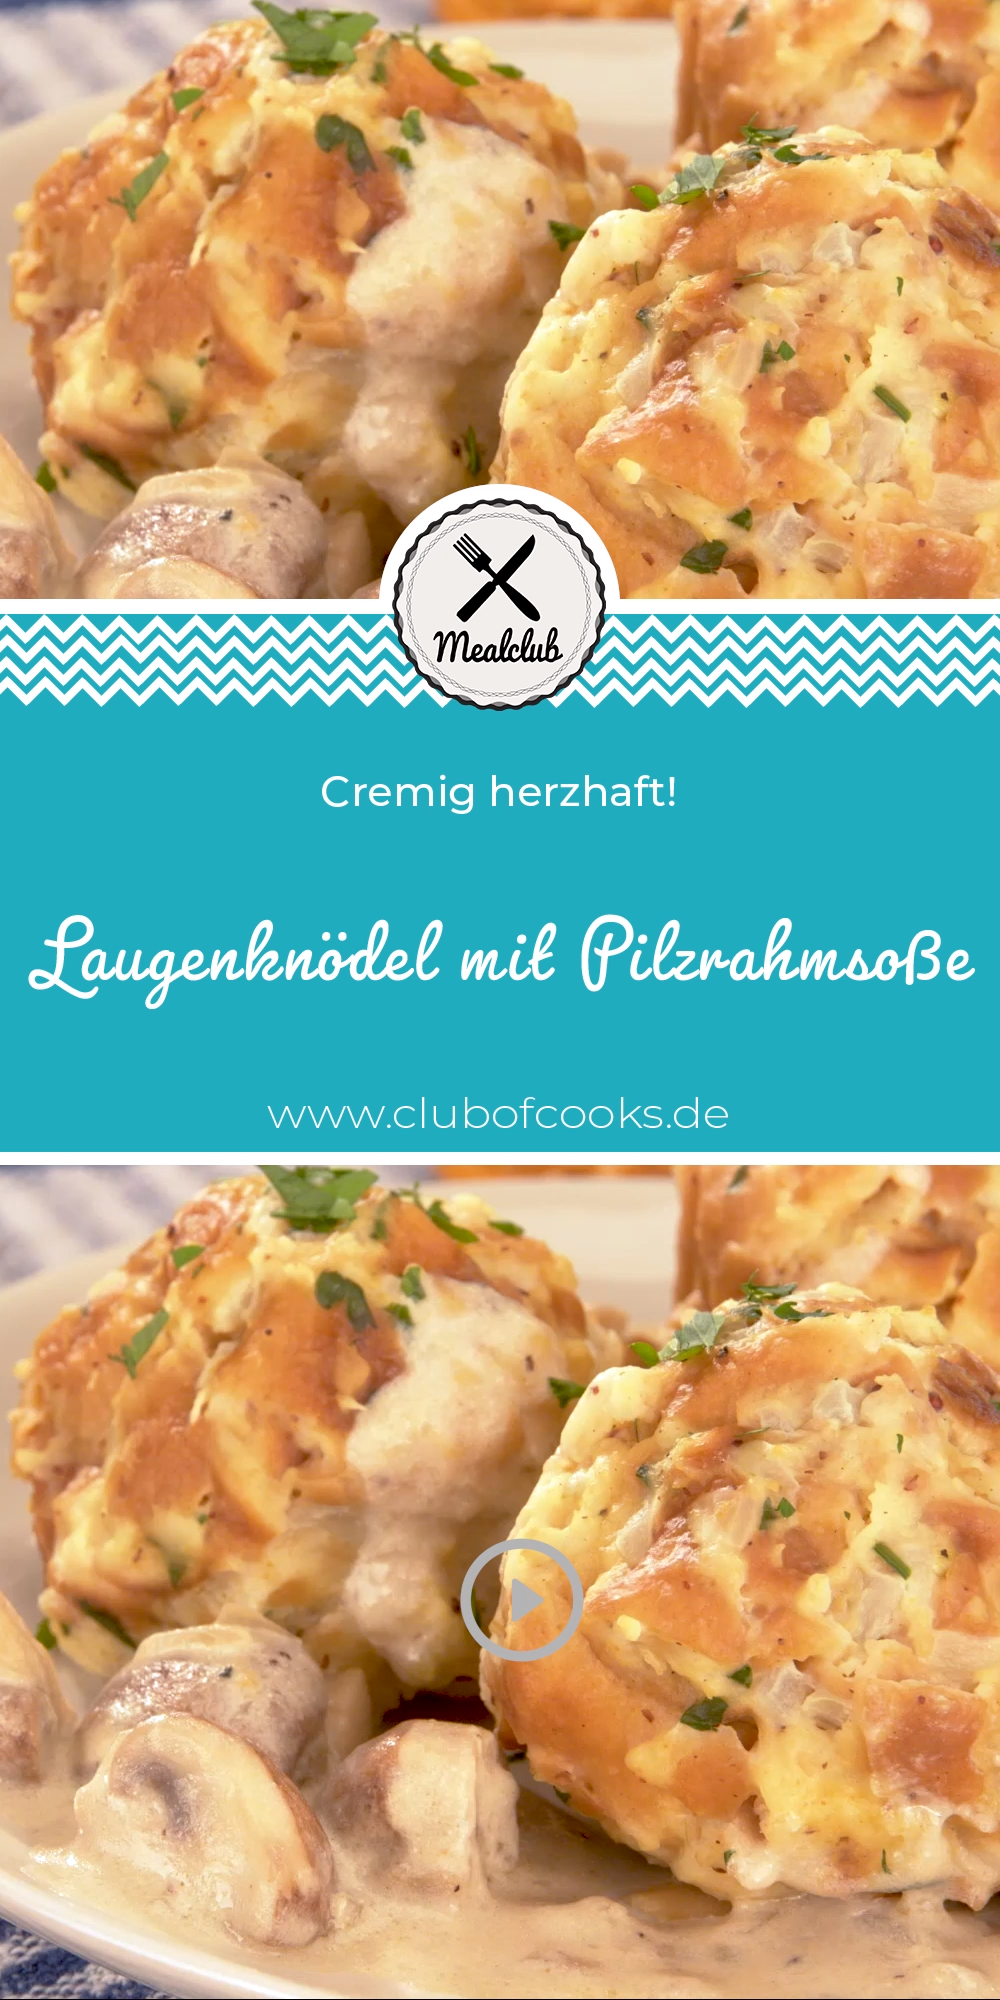 Photo of Lye dumplings with mushroom cream sauce MealClub